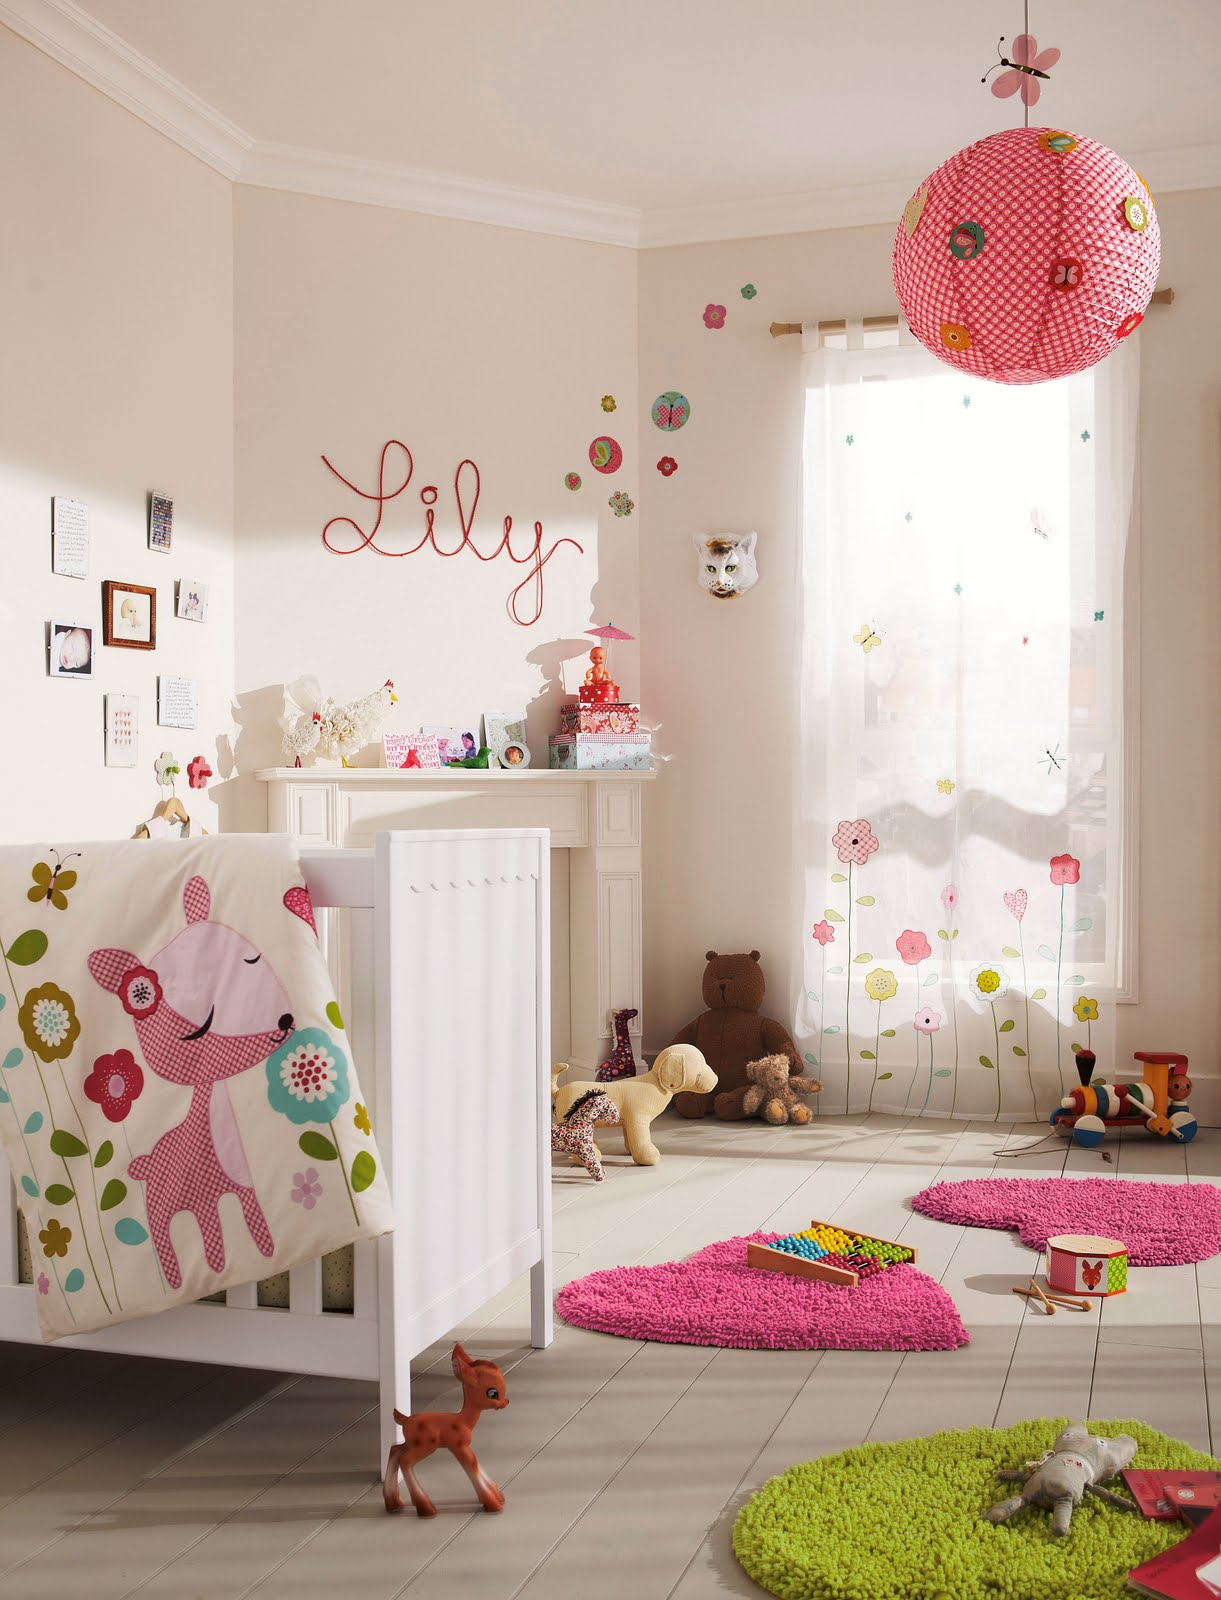 Pompons ch rie sheriff blog lifestyle mode famille for Decoration chambre de fille